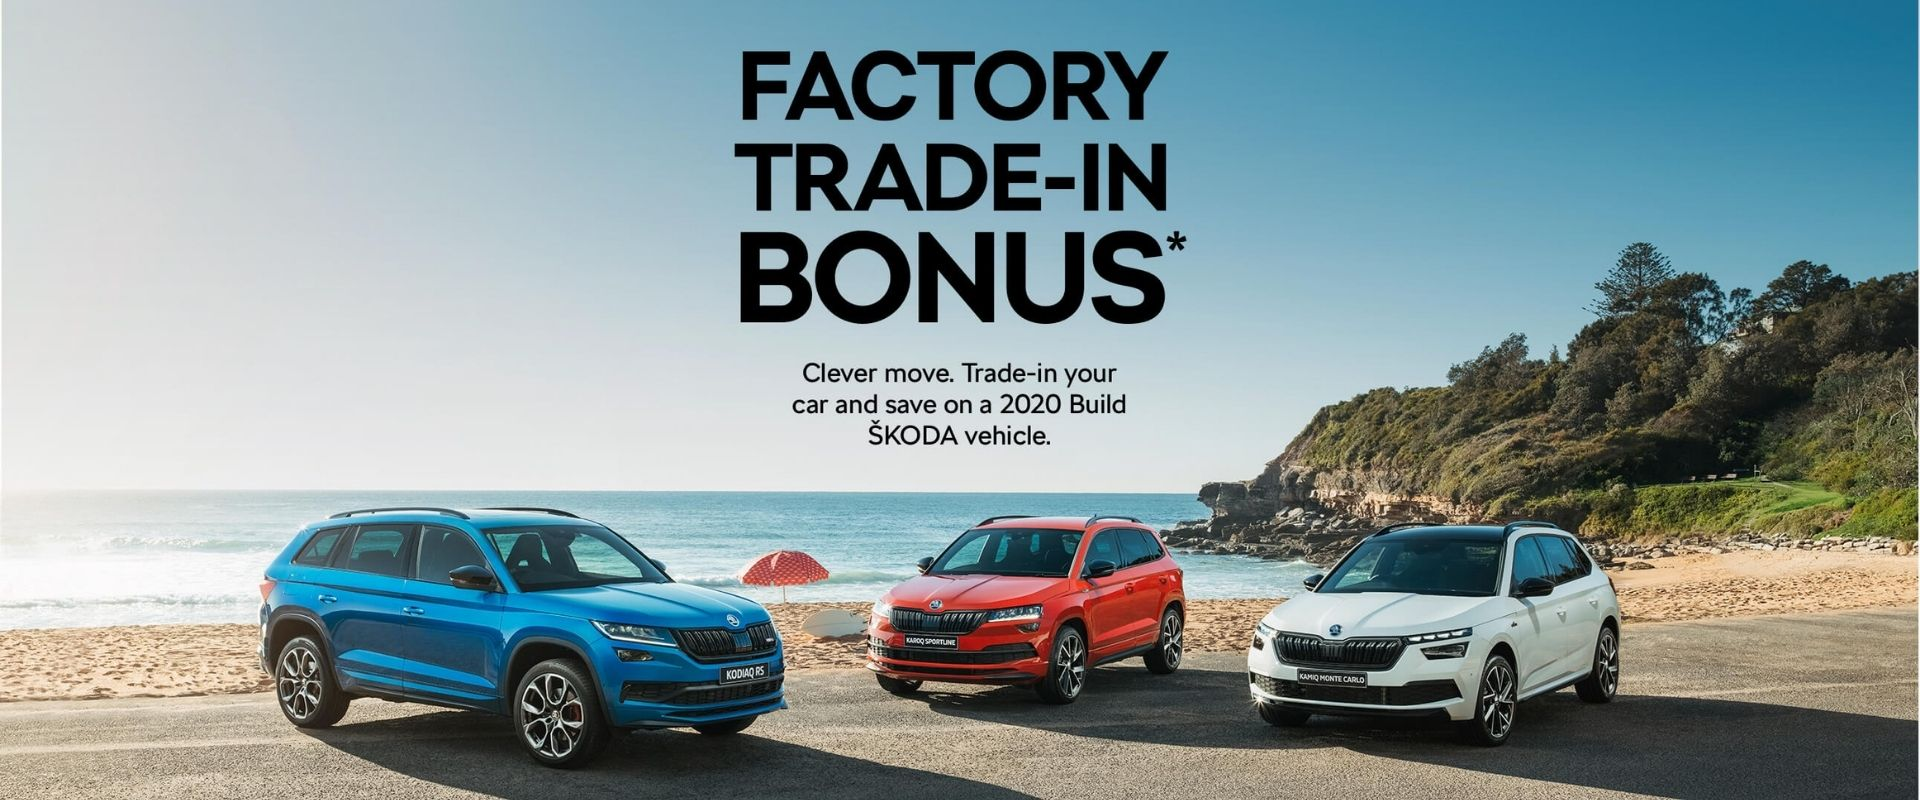 See our latest Skoda Offers and Specials